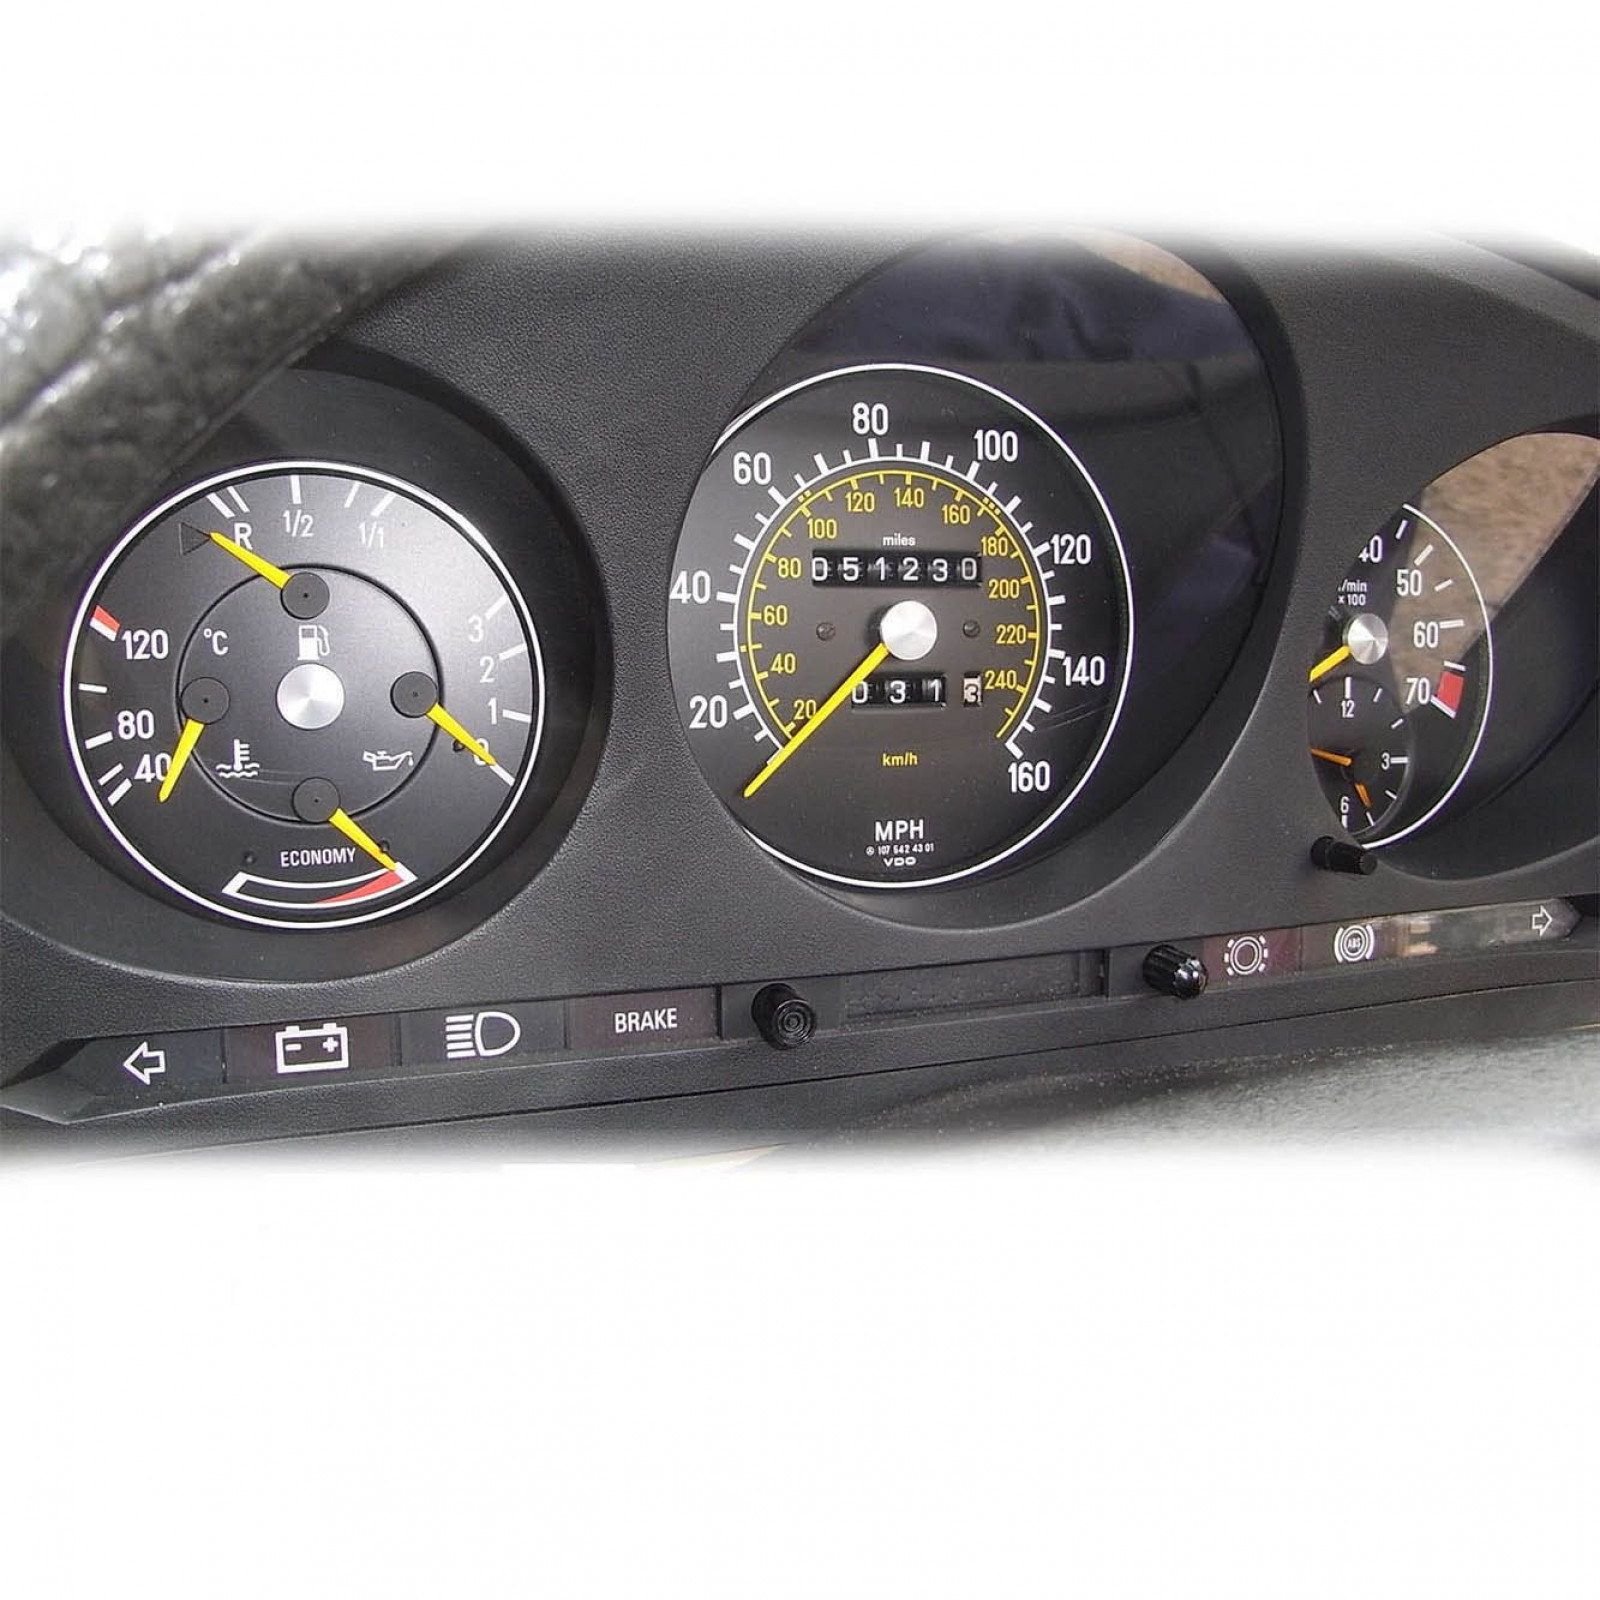 Mercedes benz sl 107 instrument cluster refurbishment for Mercedes benz cluster repair